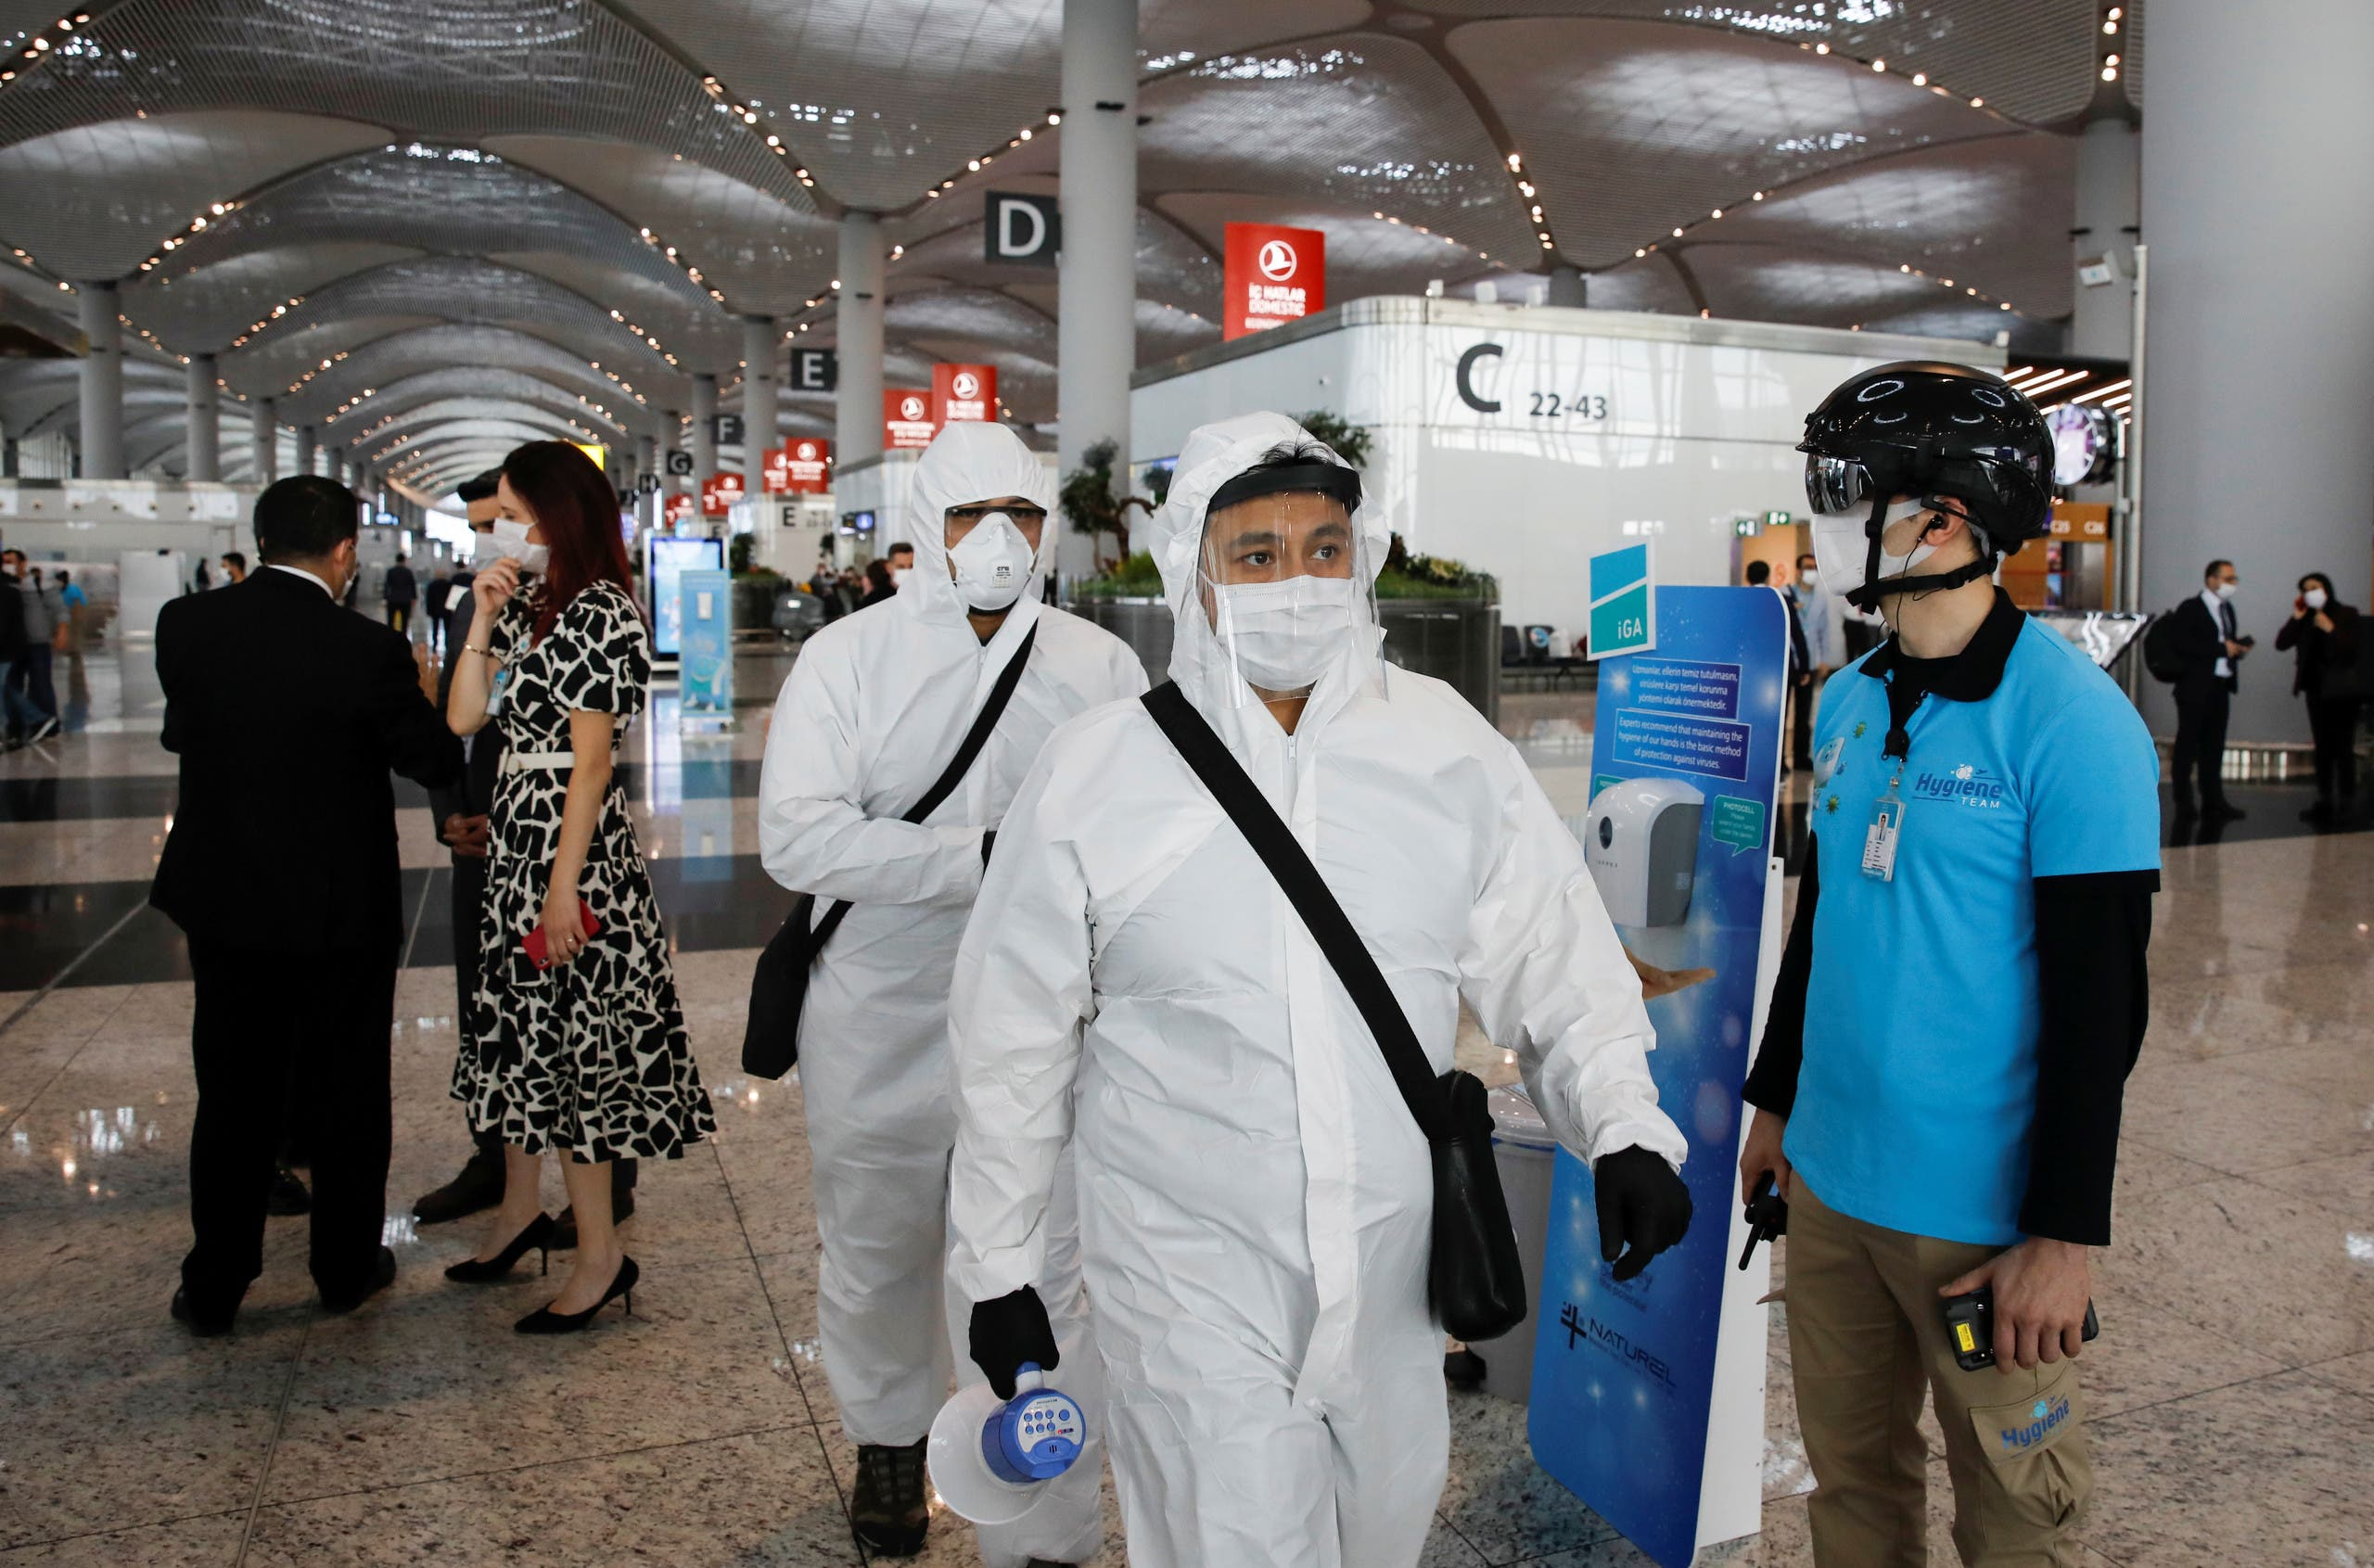 An employee wearing a thermal imaging VF helmet monitors passengers at the entrance of Istanbul Airport, in Istanbul, Turkey June 1, 2020. (Reuters)